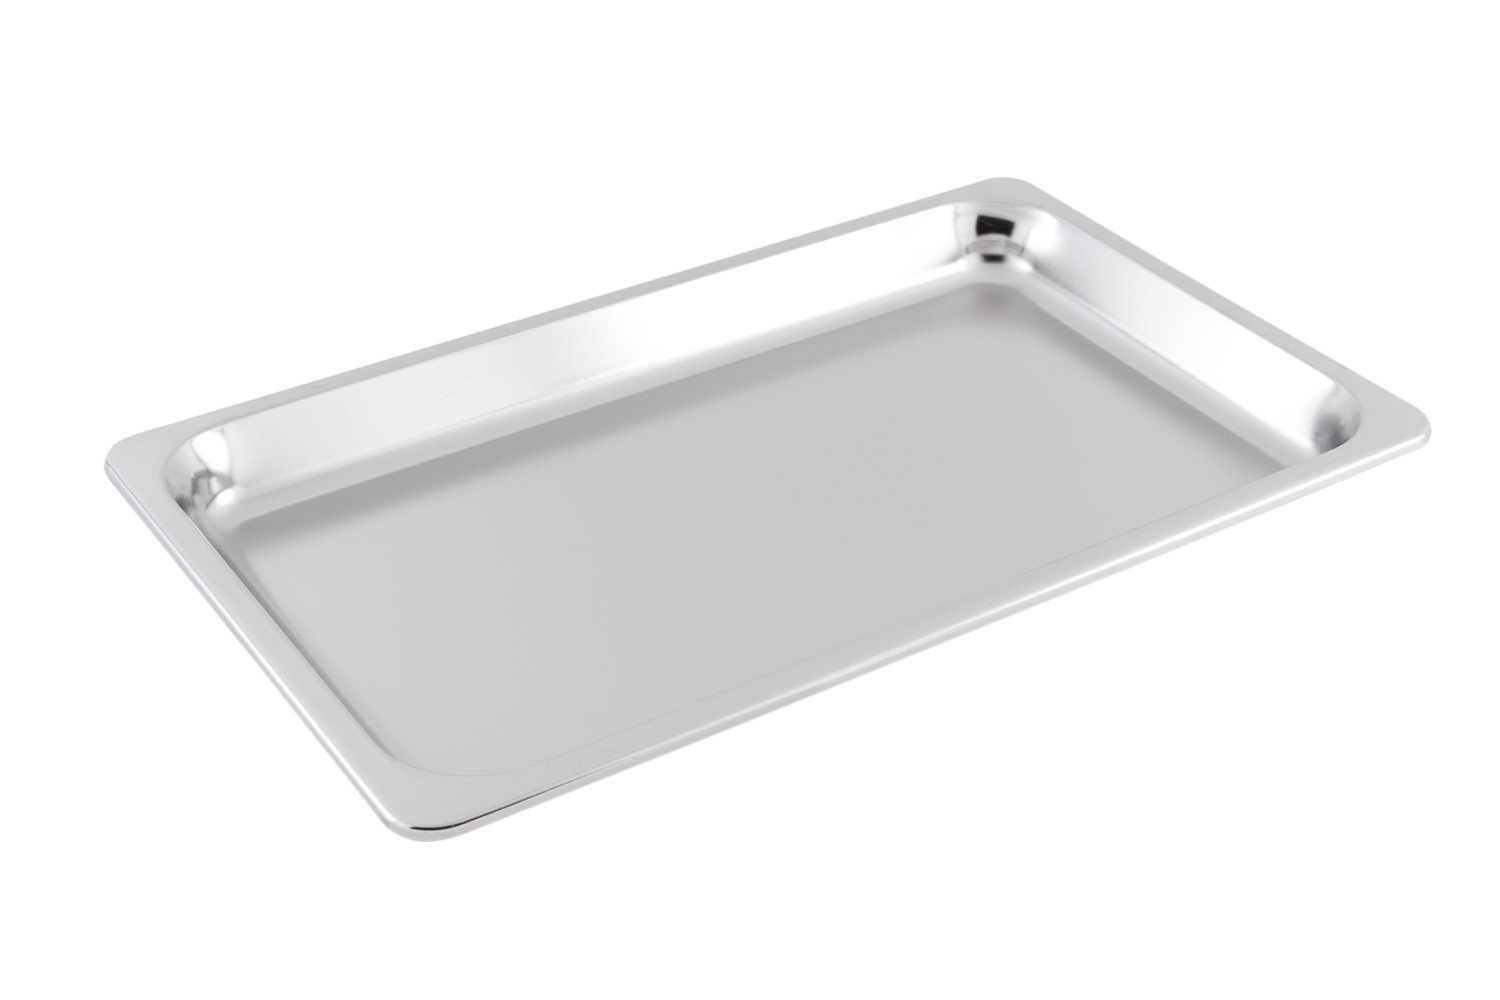 Bon Chef 5098SS Stainless Steel Full Size Shallow Rectangle Food Pan, 5 quart Capacity, 21'' Length x 13'' Width x 1-1/2'' Height